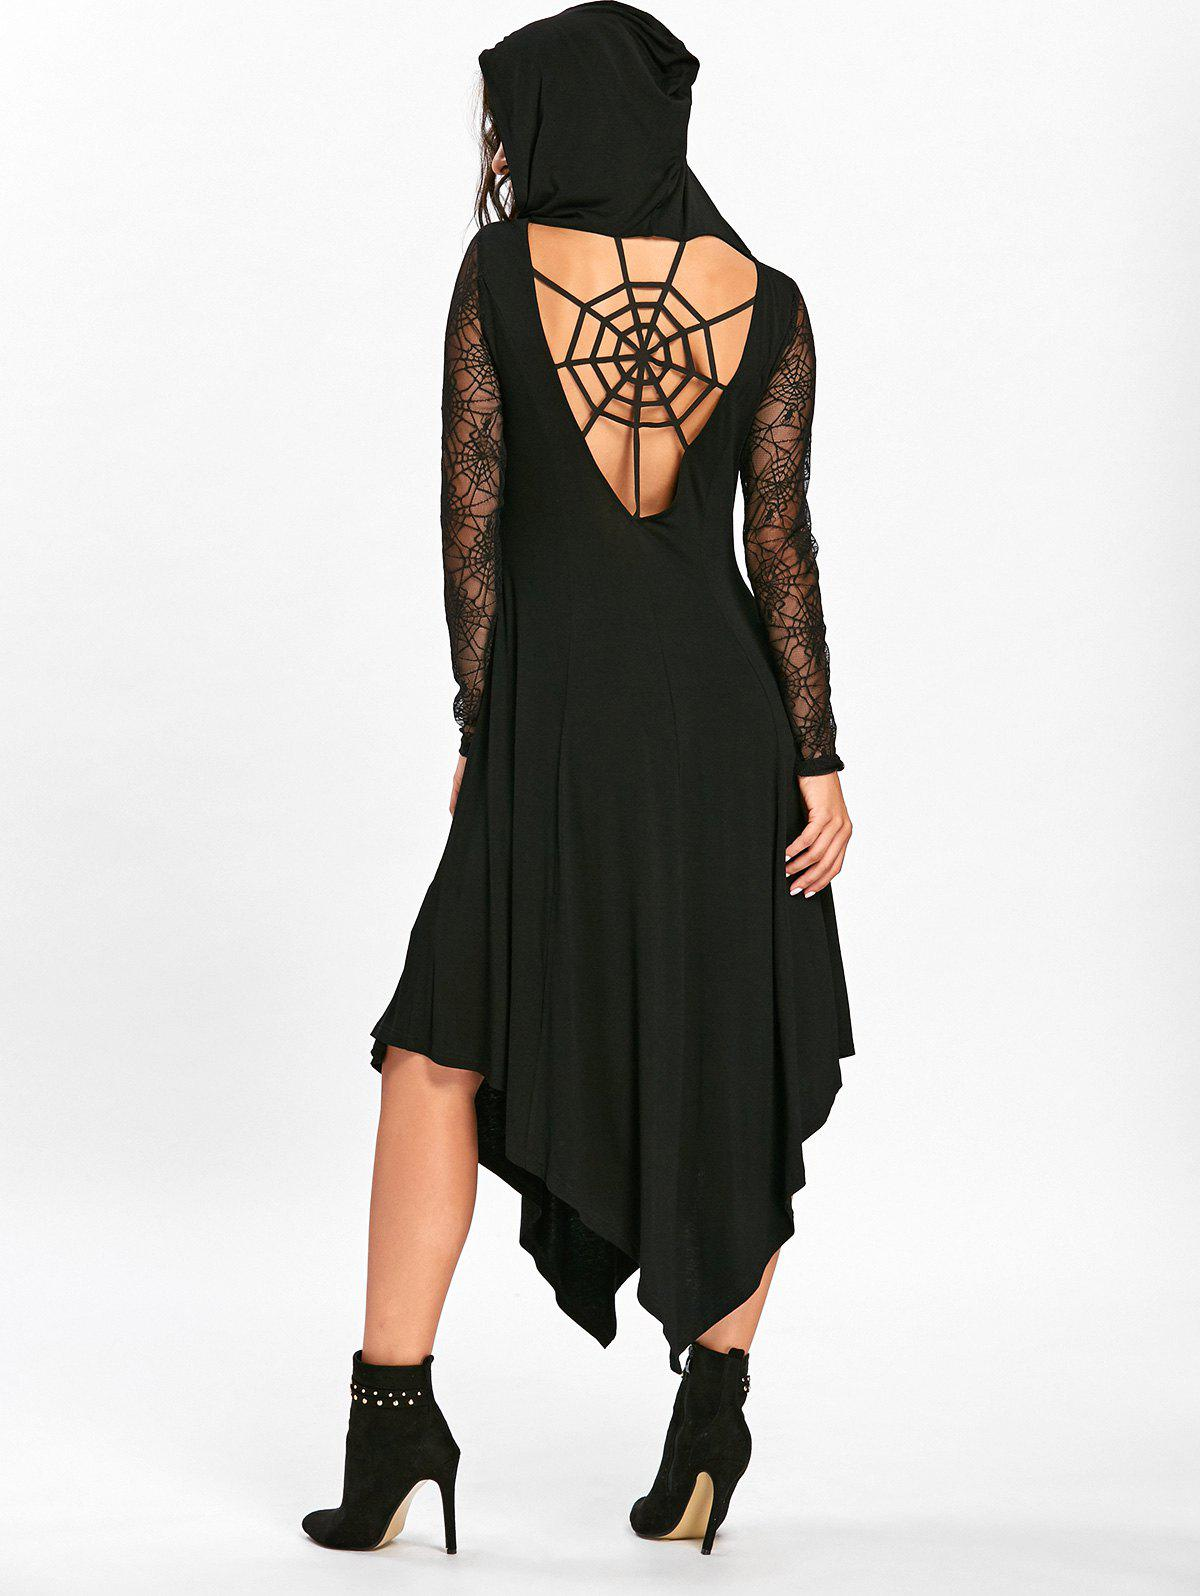 Halloween Spider Web Cut Out Midi Handkerchief Dress - BLACK XL